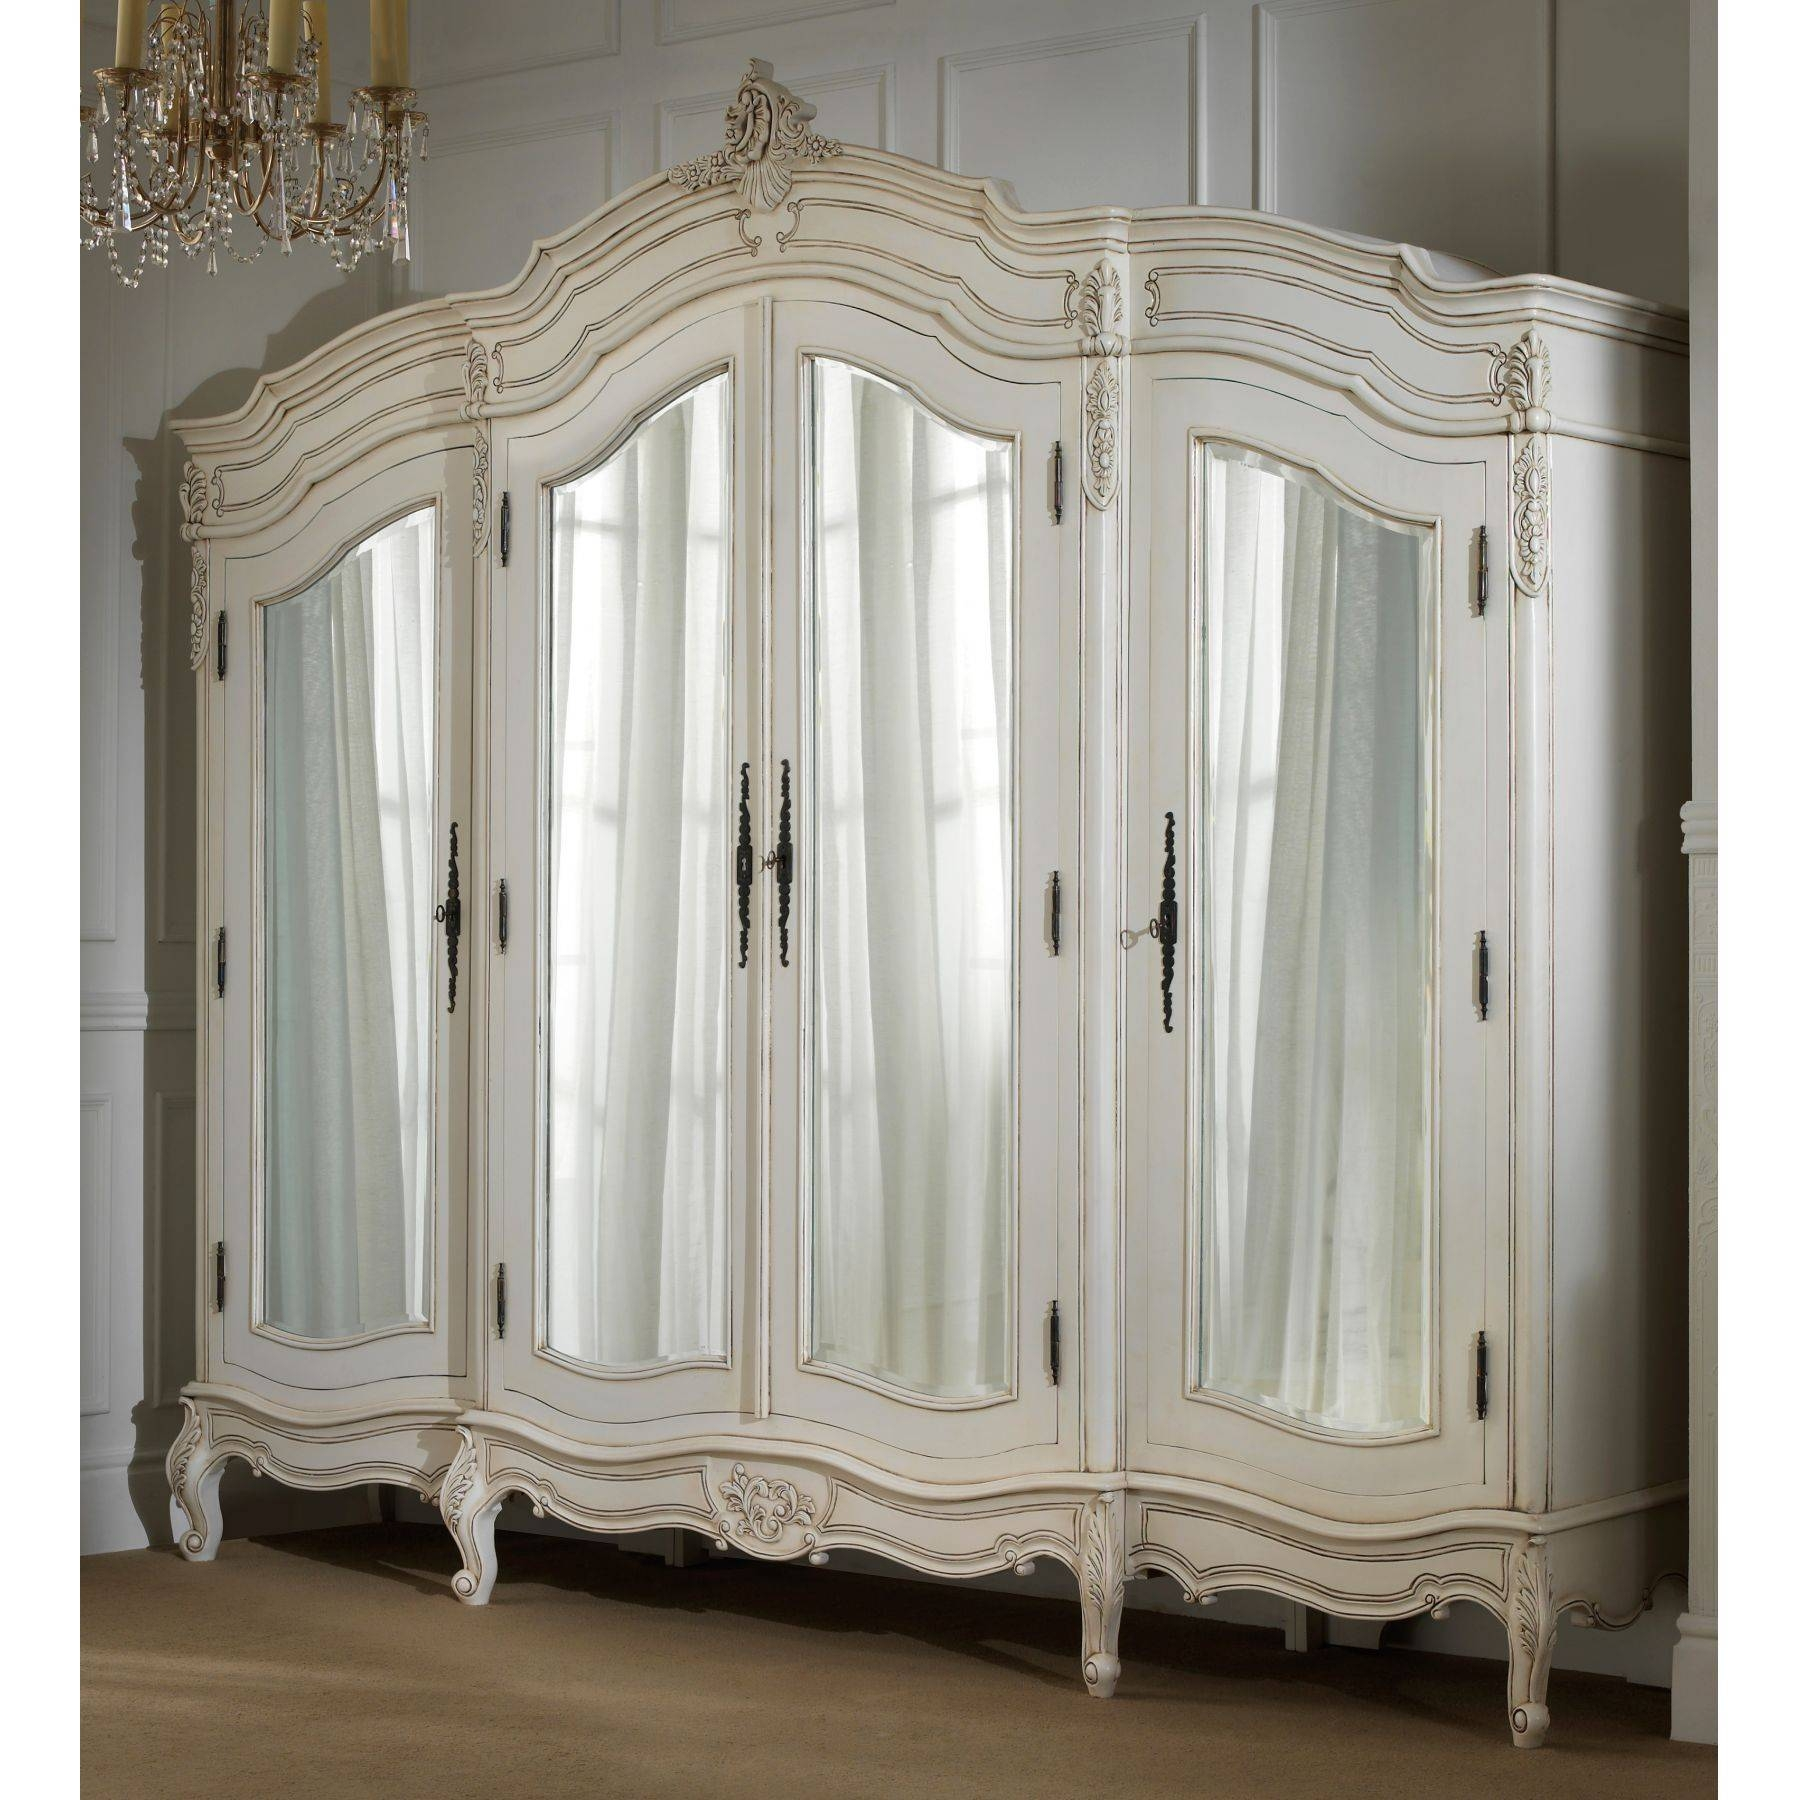 Ikea Armoire Bedroom Furniture Mesmerizing Of Freestanding Swing with regard to White Antique Wardrobes (Image 8 of 15)